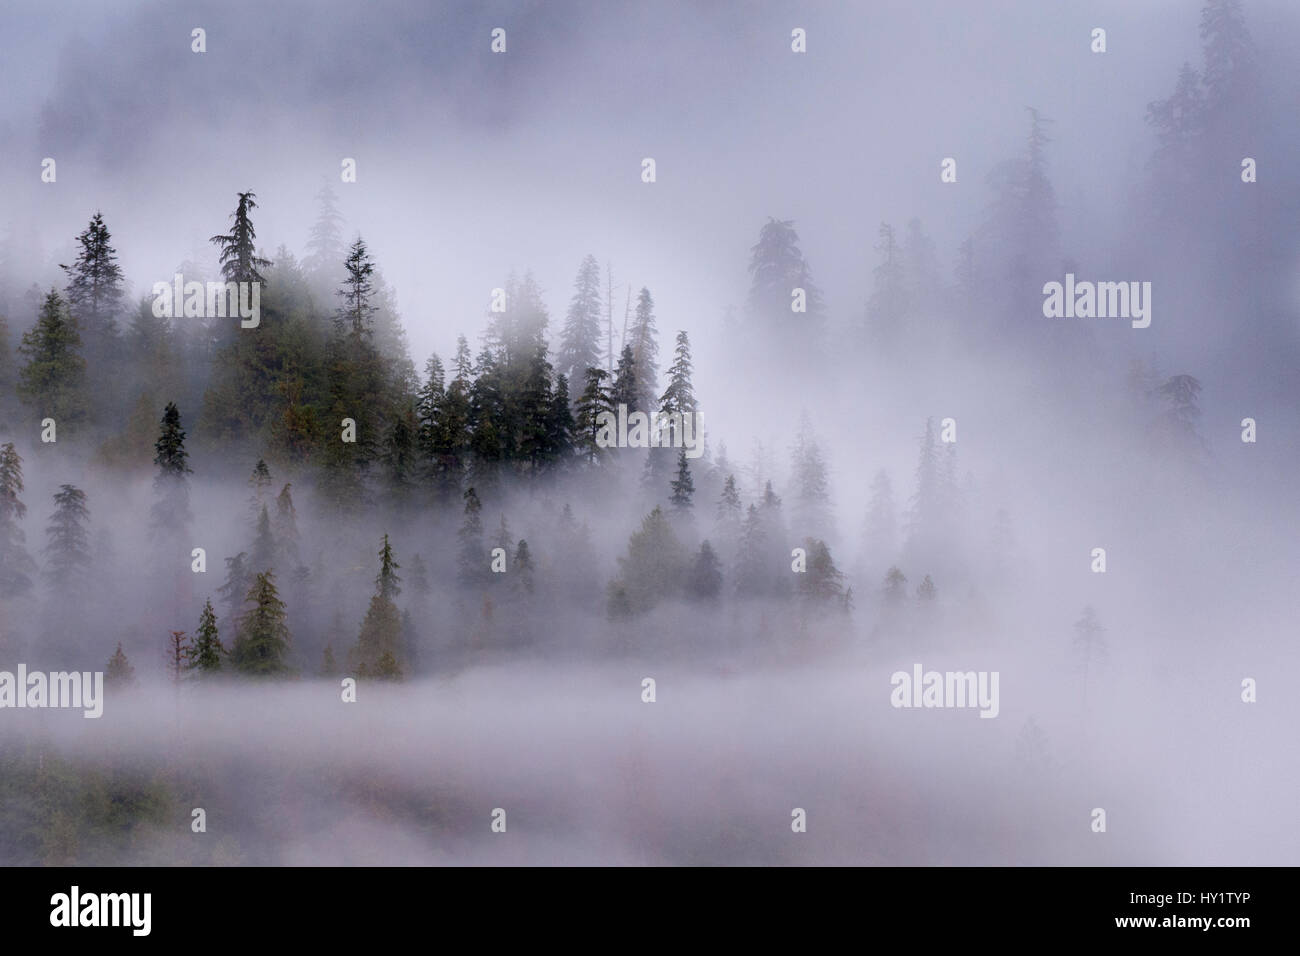 Early morning mist over coastal coniferous forest. Near Khutze Inlet, Great Bear Rainforest, British Columbia, Canada, - Stock Image